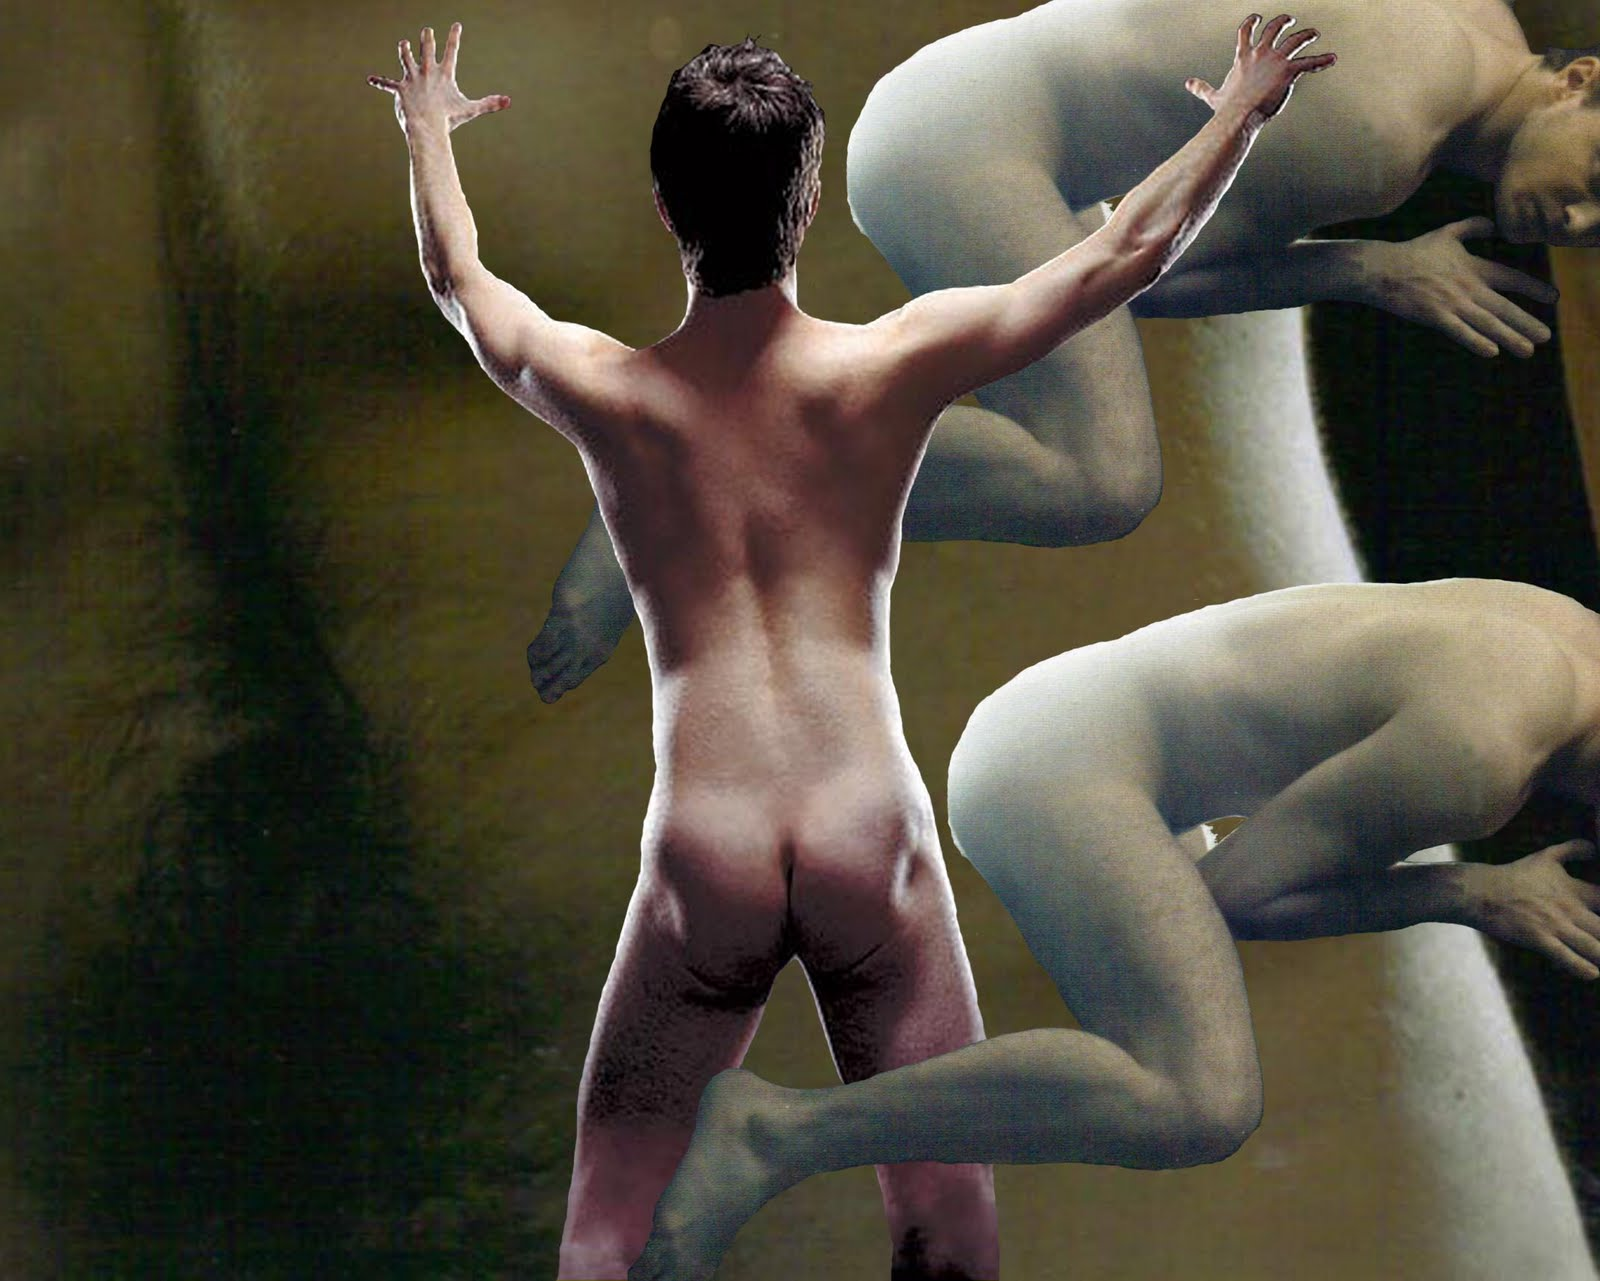 And Shirtless daniel radcliffe naked sorry